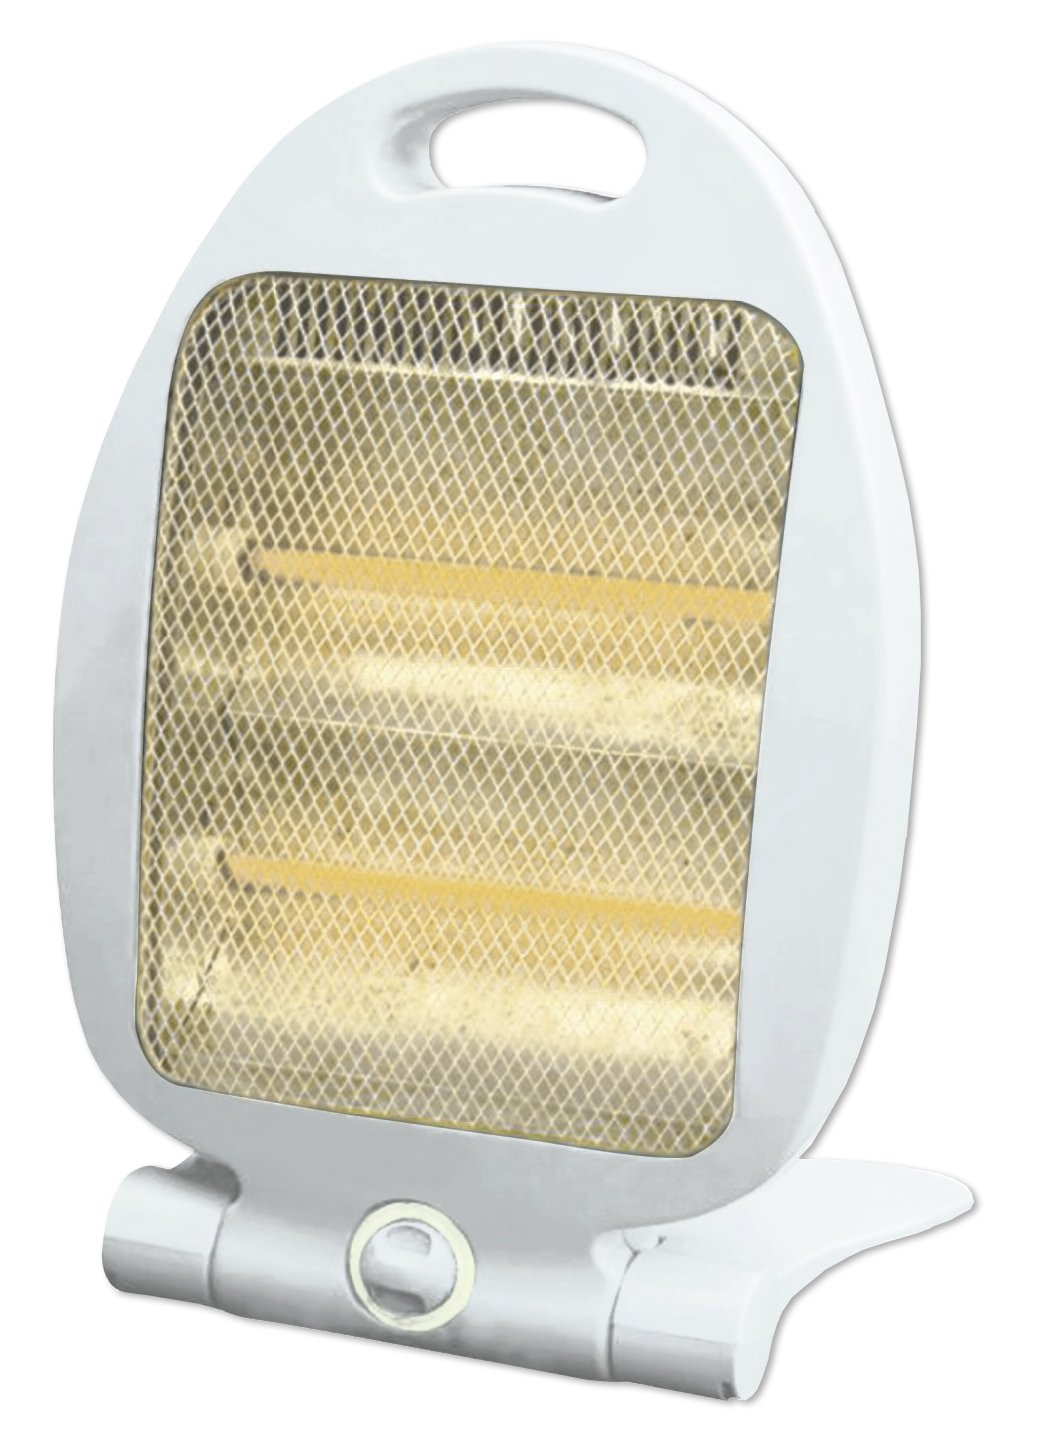 Good Ideas 2in1 Halogen Heater Tilt Safety Switch (846) Portable, Heater ideal for quickly warming a room, caravans, flats. 400w or 800w Manufactured for Good Ideas